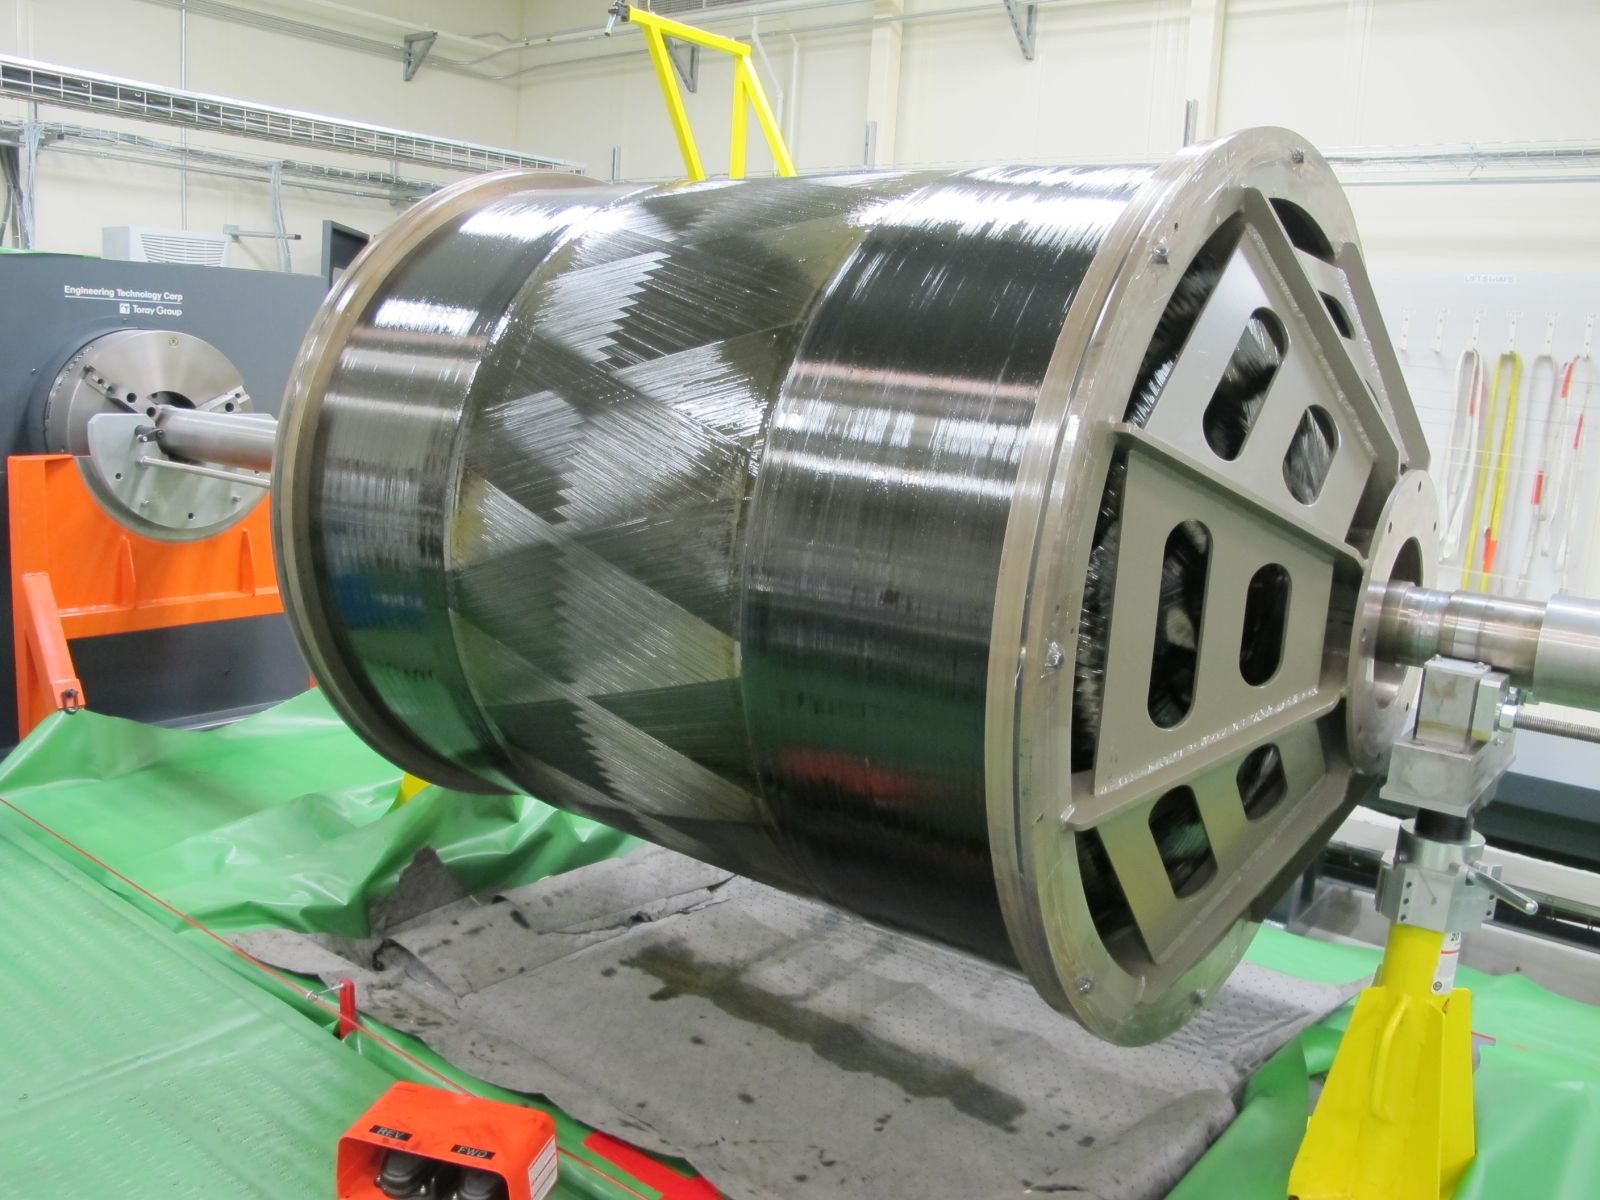 An example of the type of large solid motor carbon fiber case Aerojet Rocketdyne will produce at its new Huntsville, Alabama, Advanced Manufacturing Facility starting in early 2020. Photo and Caption Credit: Aerojet Rocketdyne